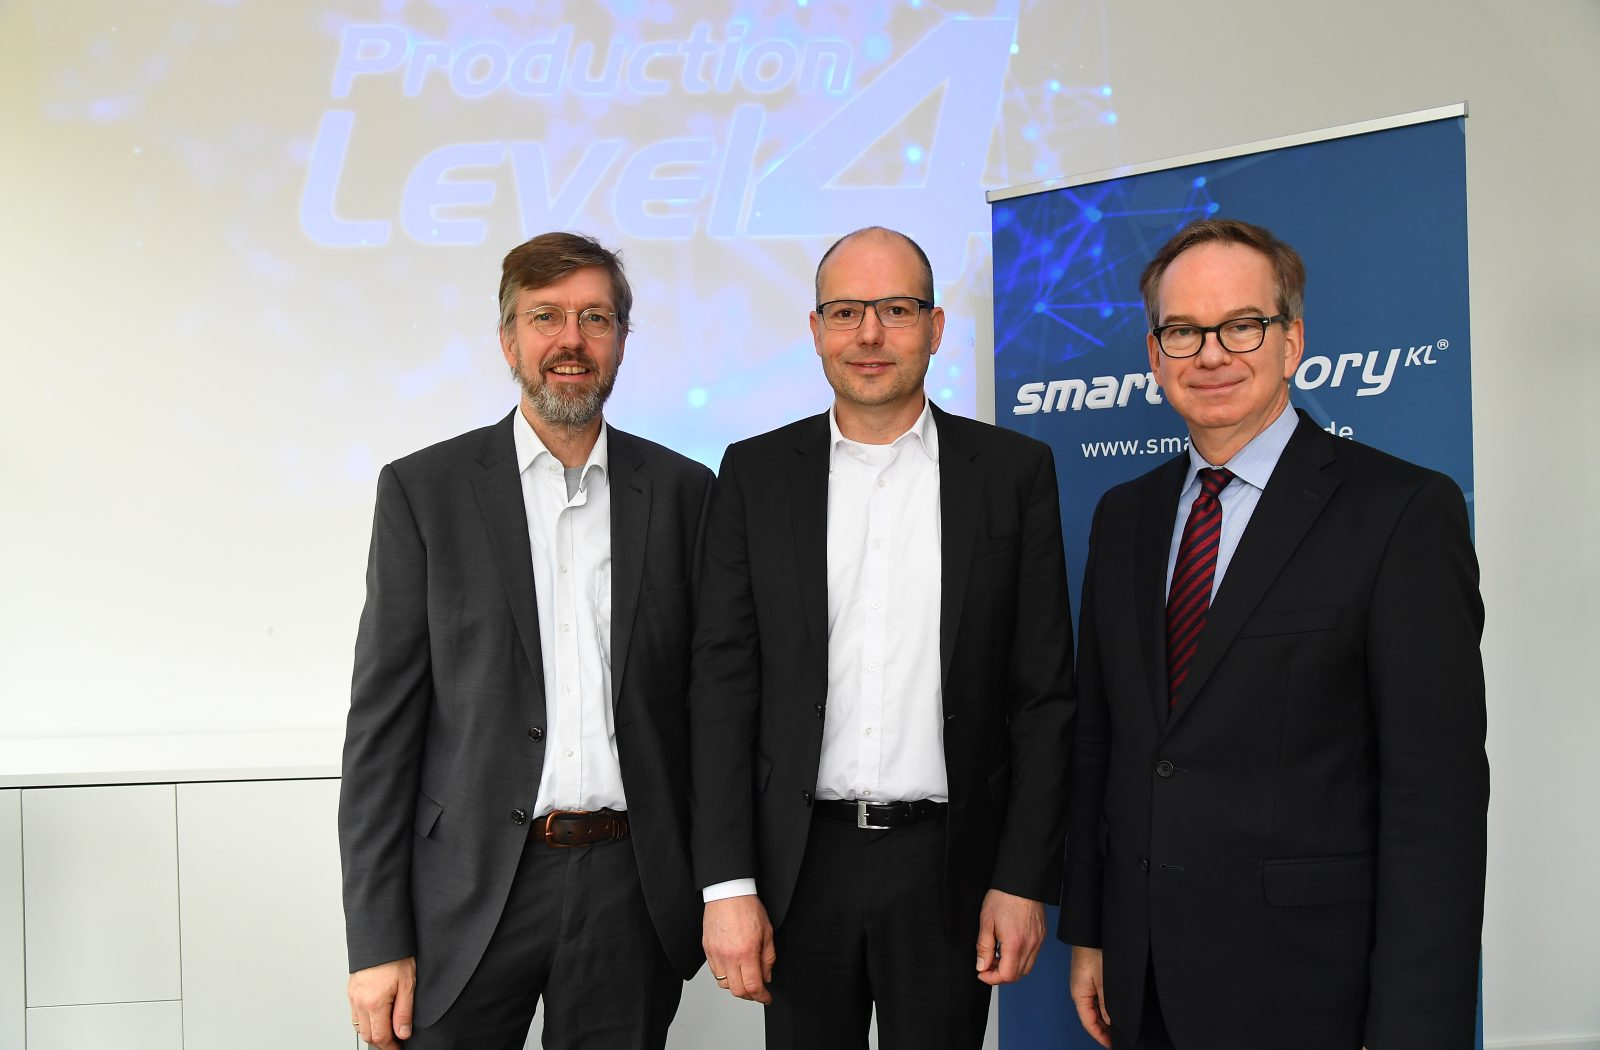 SmartFactoryKL introduces the future of production: Production Level 4